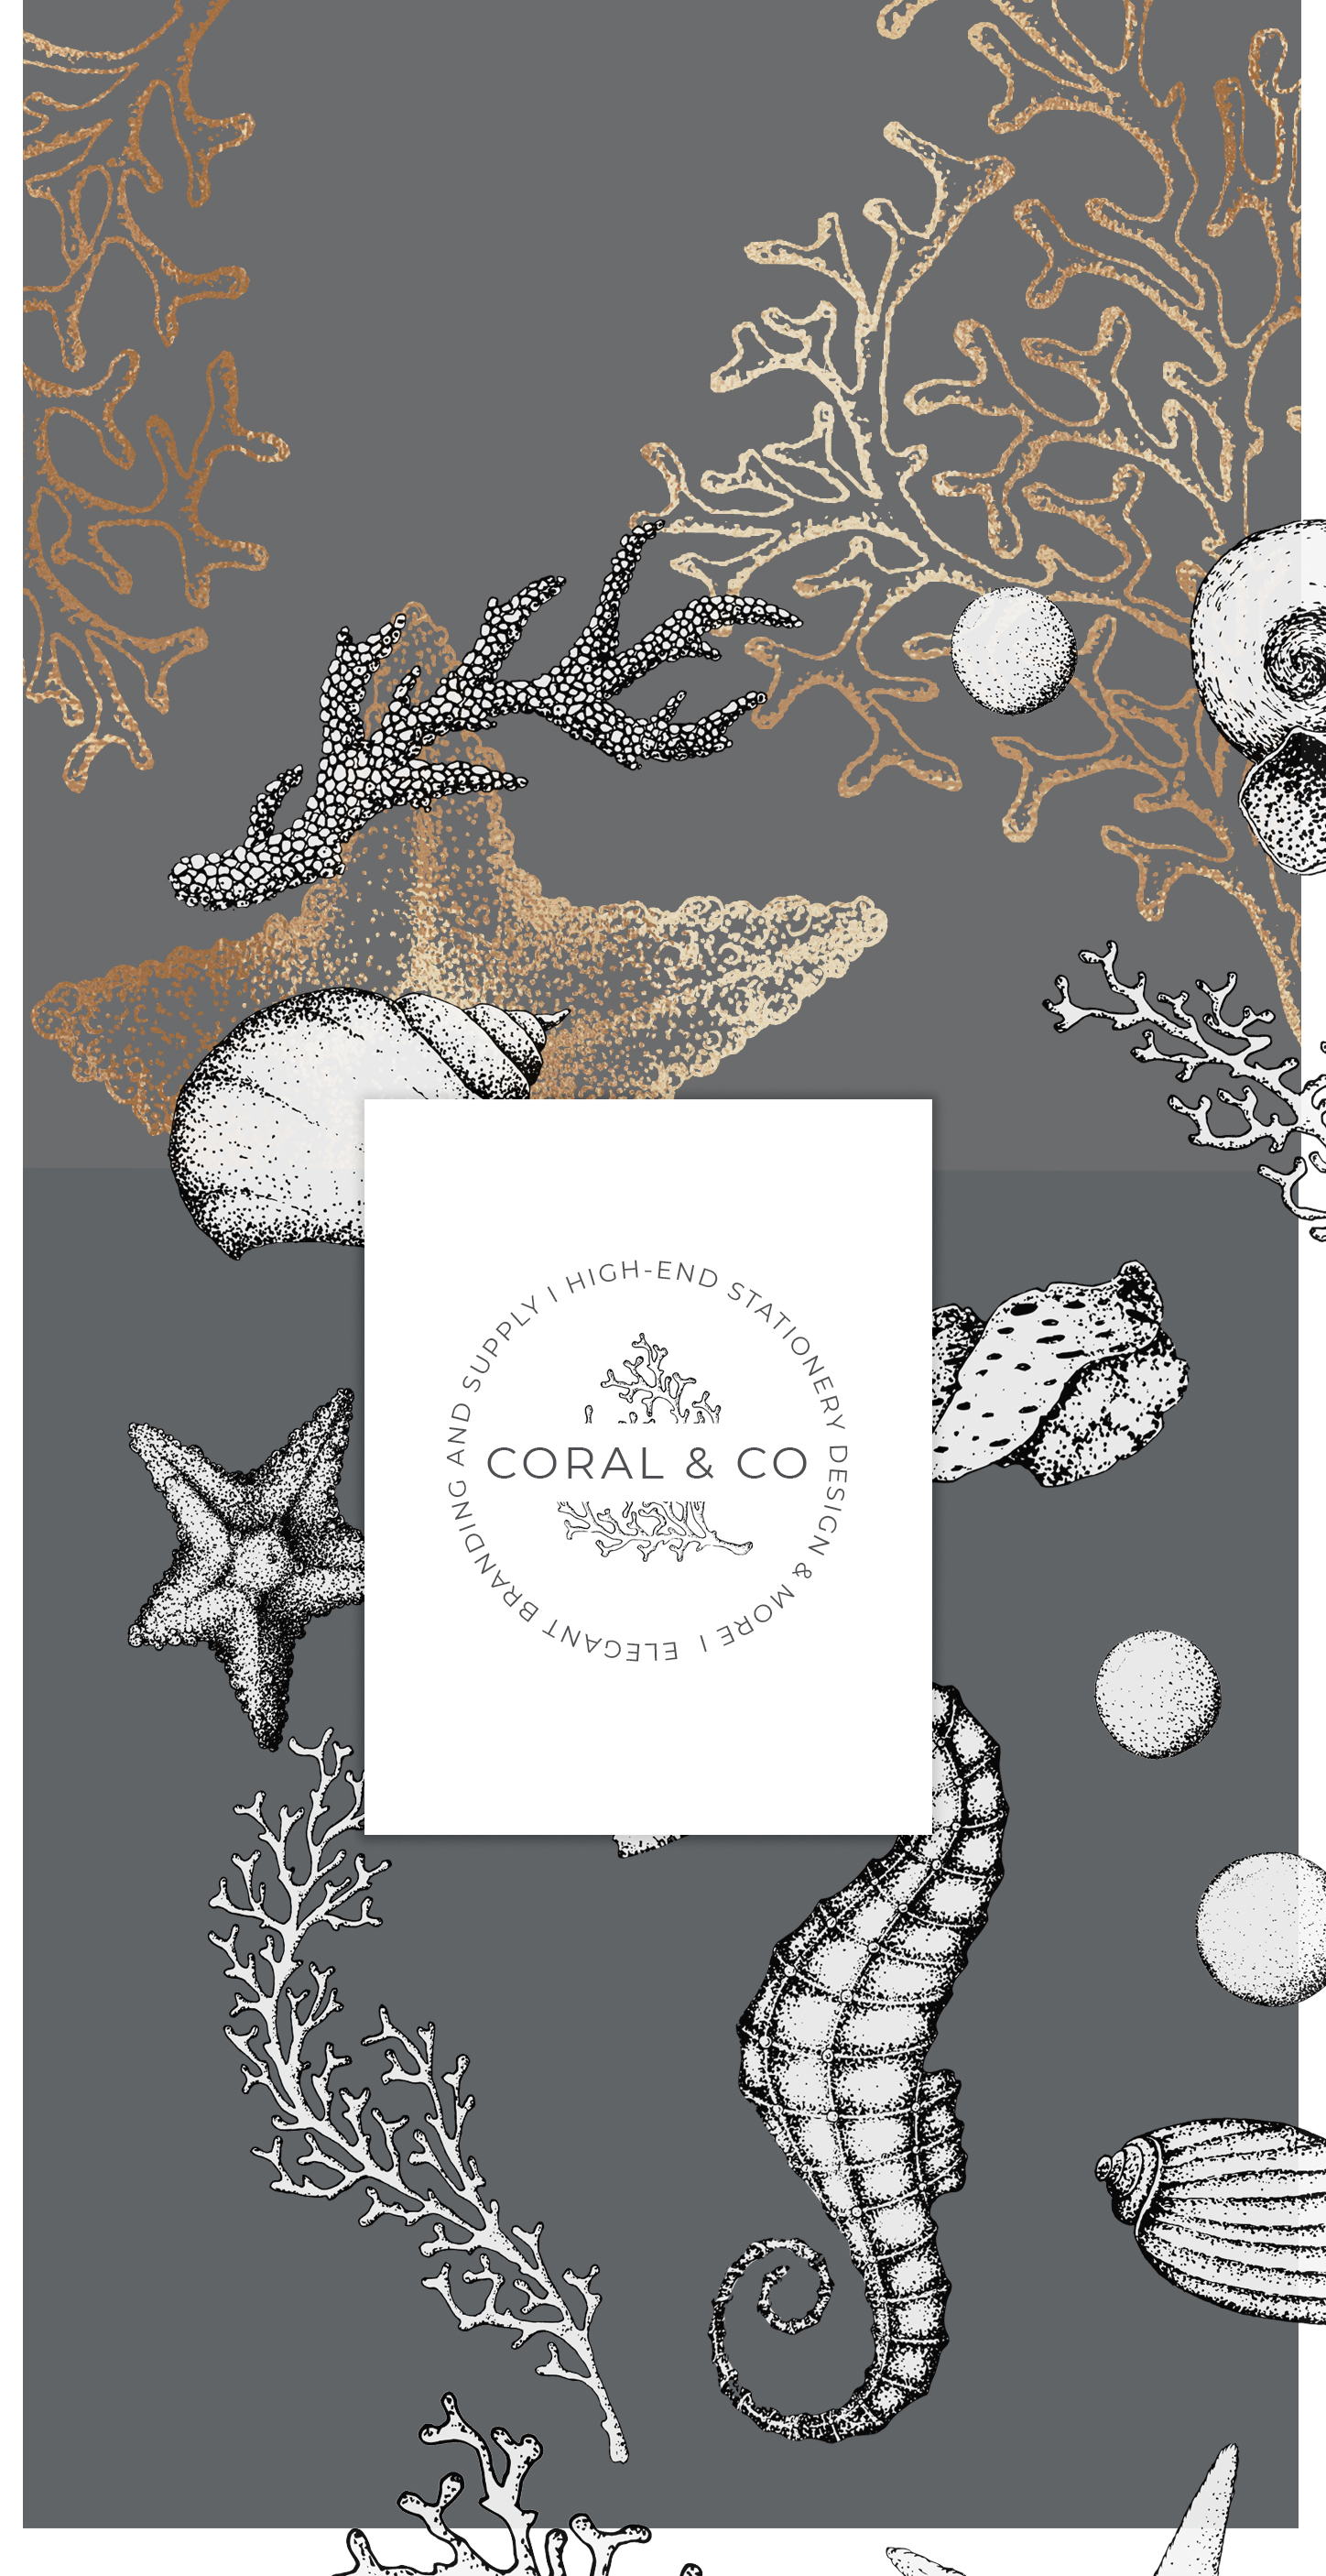 Coral Beach – Maritime Illustrations